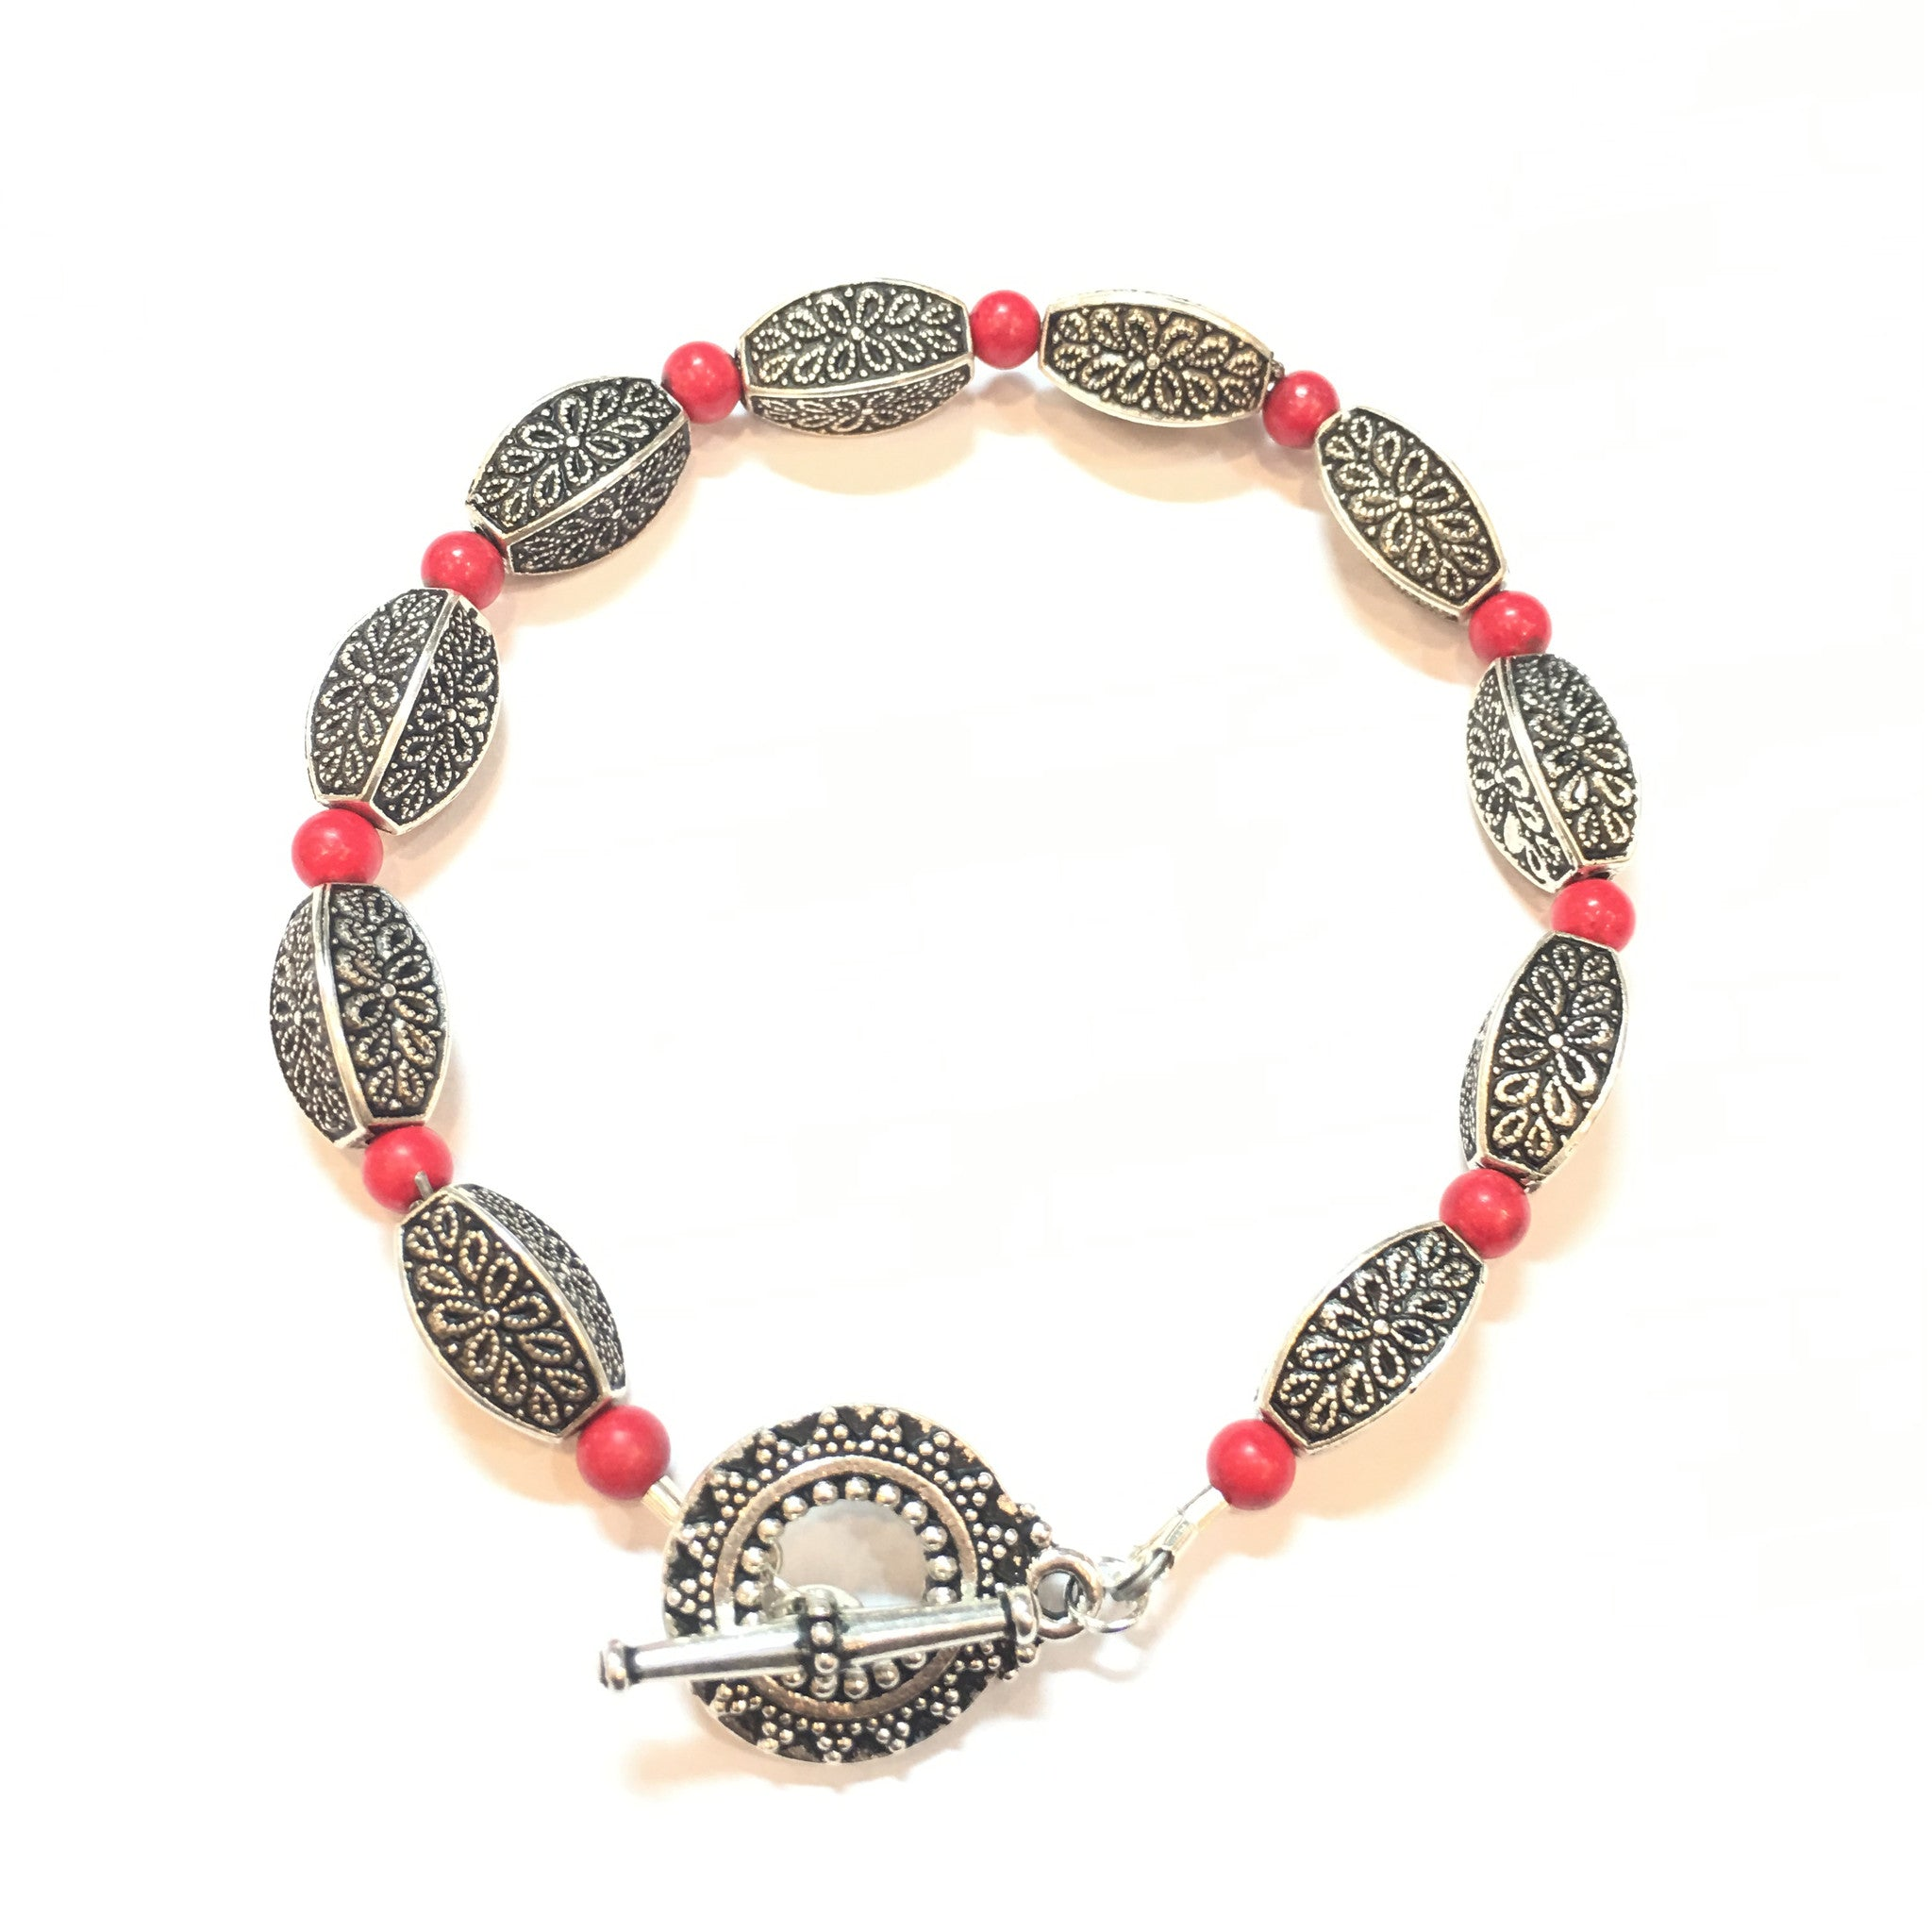 Coral and Antique Silver Bracelet - Real Chic Boutique  - 4